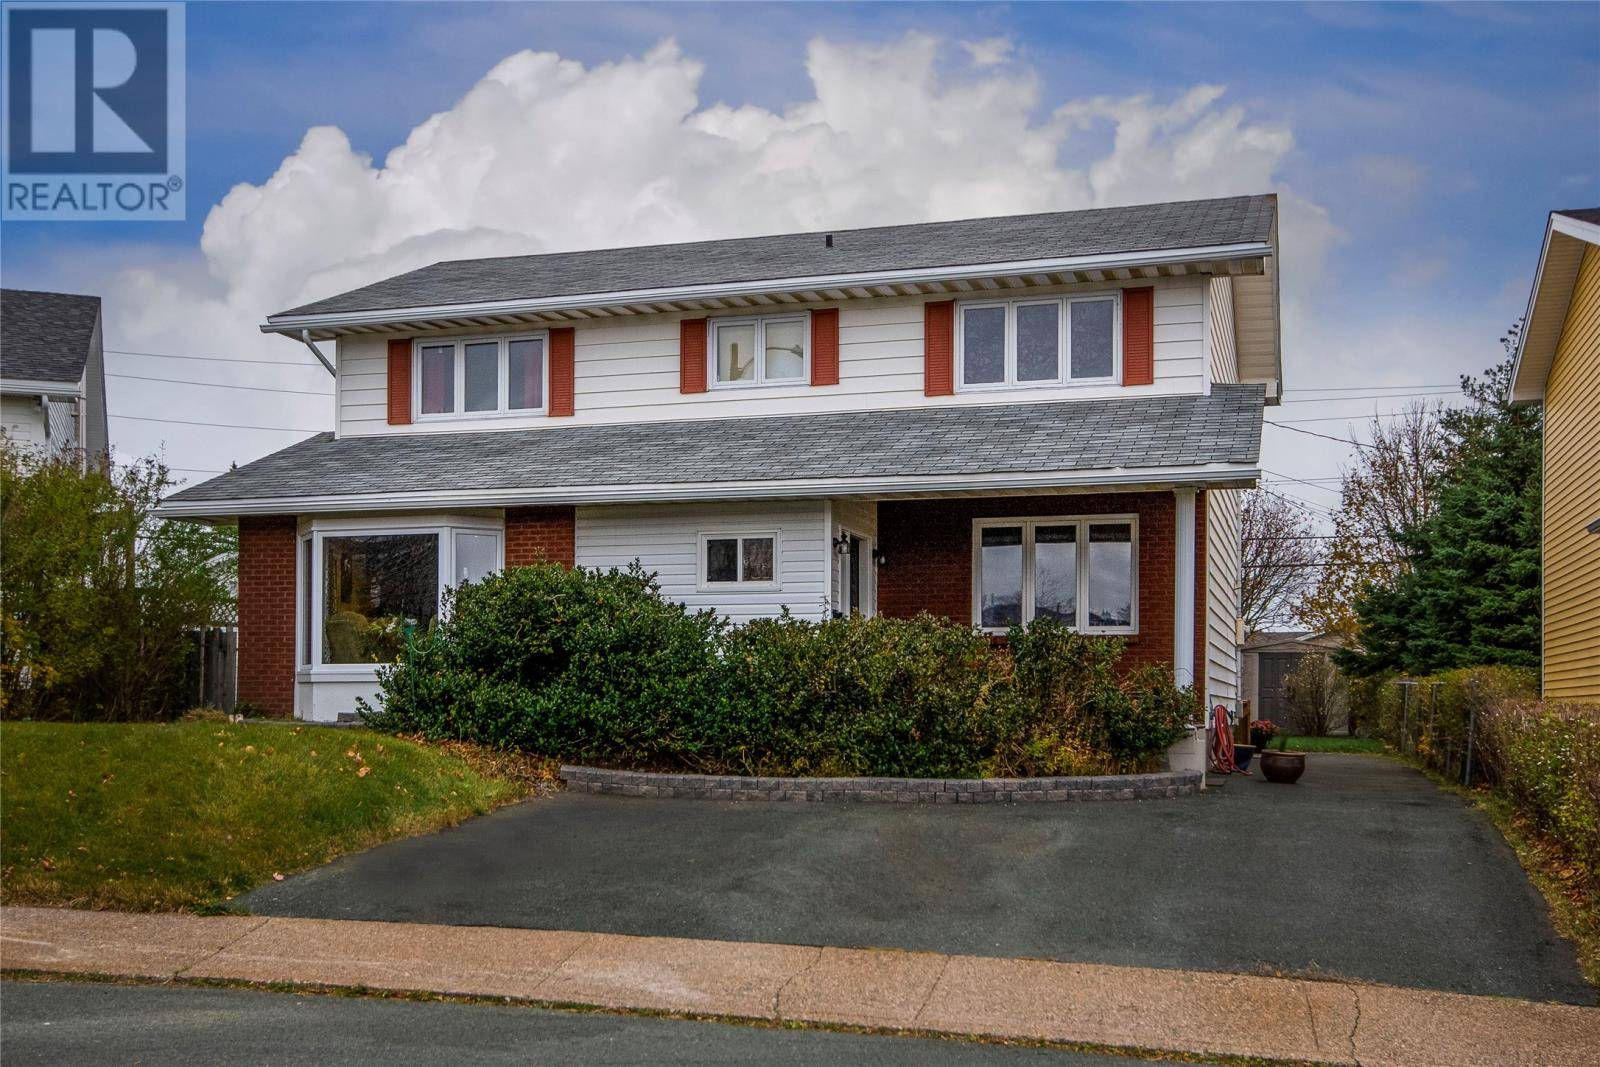 House for sale at 1 Guzzwell Dr St. John's Newfoundland - MLS: 1207118